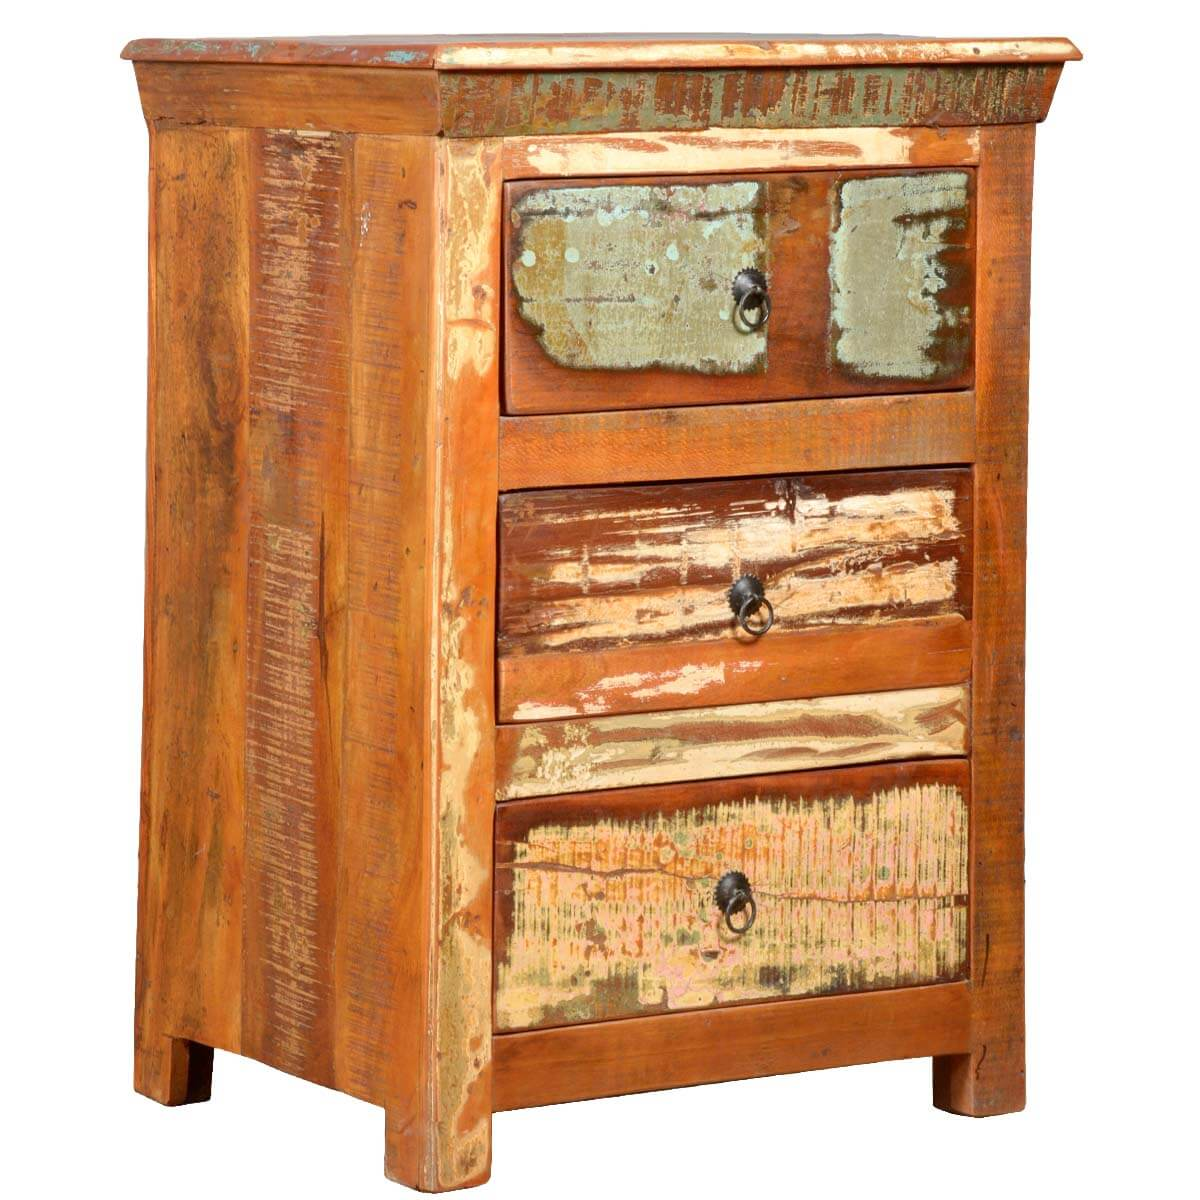 Rustic reclaimed wood mini chest of drawers dresser